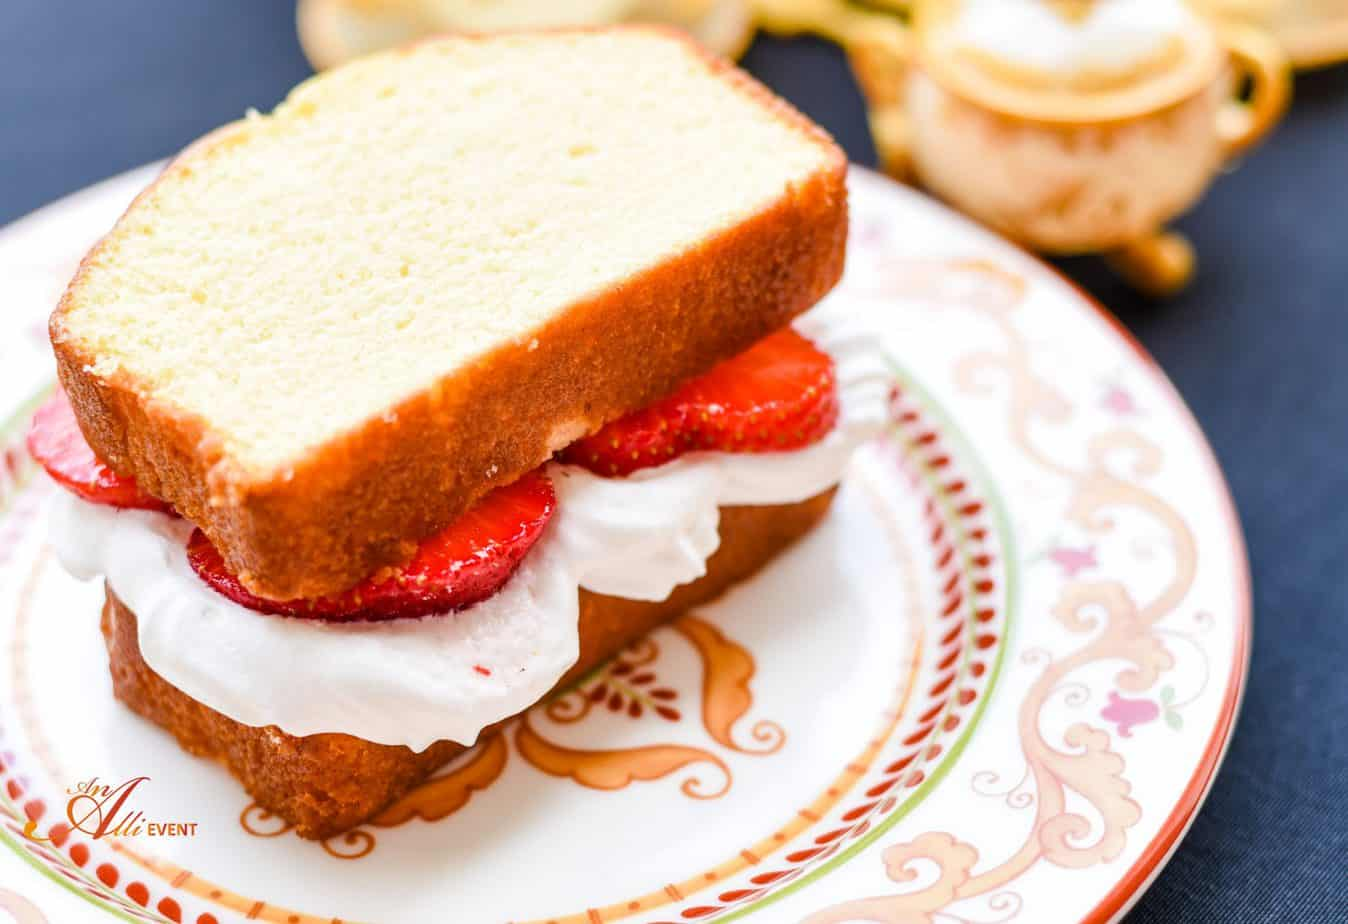 Beauty and the Beast Tea Party with Strawberry Shortcake Sandwiches - An Alli Event